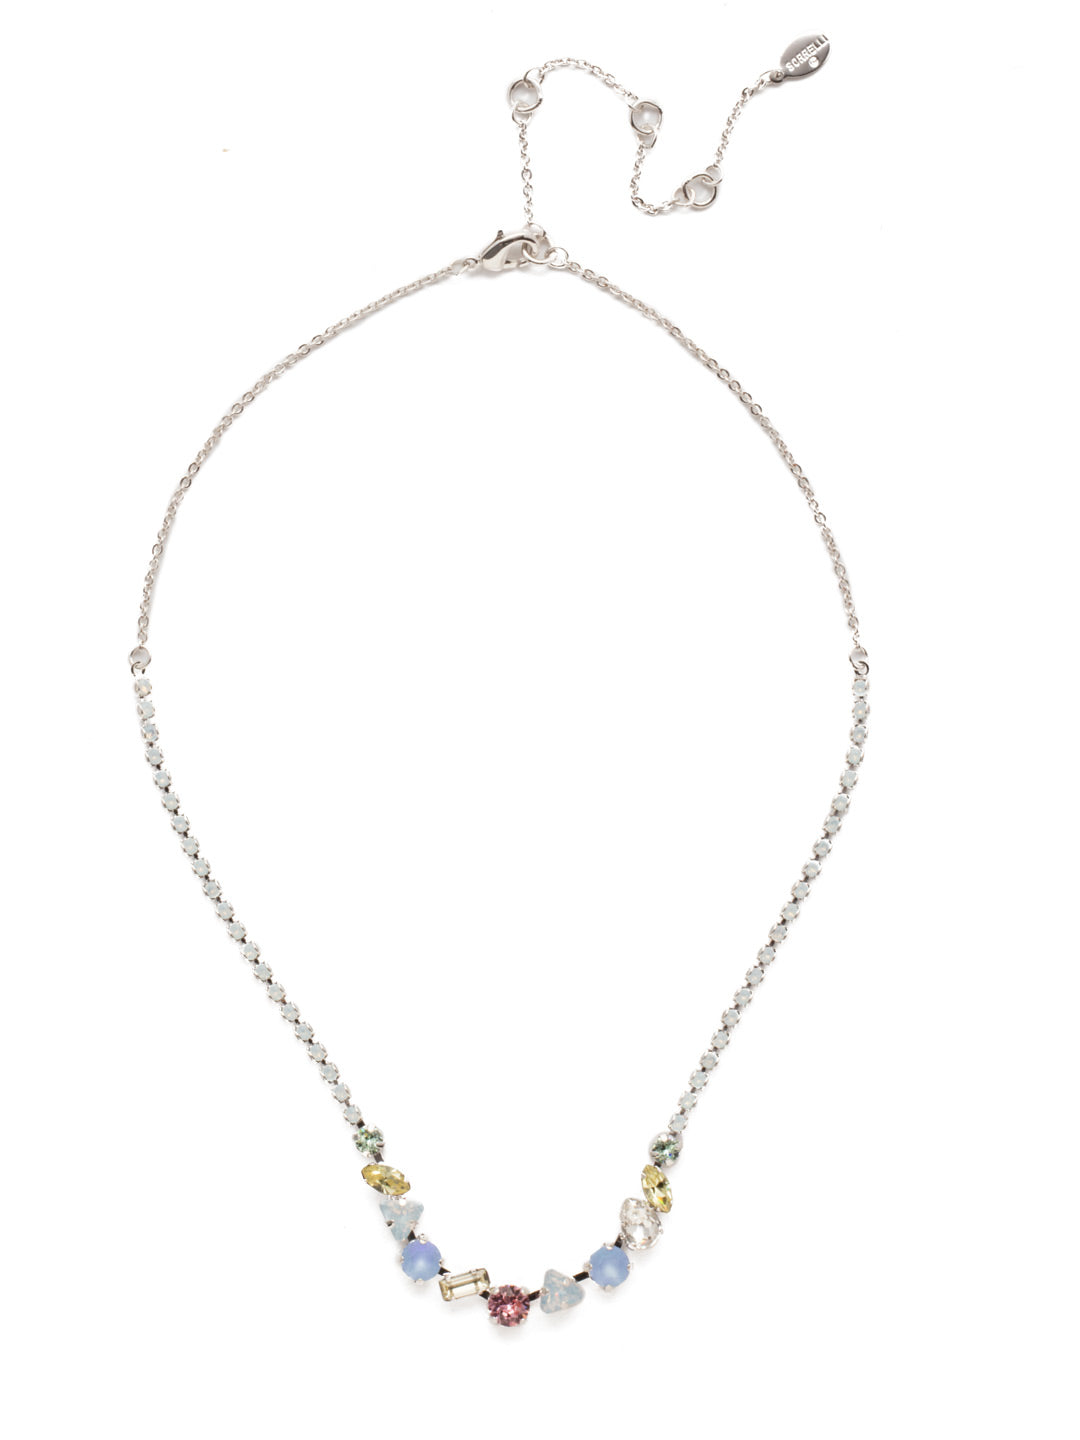 Cherished Tennis Necklace - NEK19RHSSU